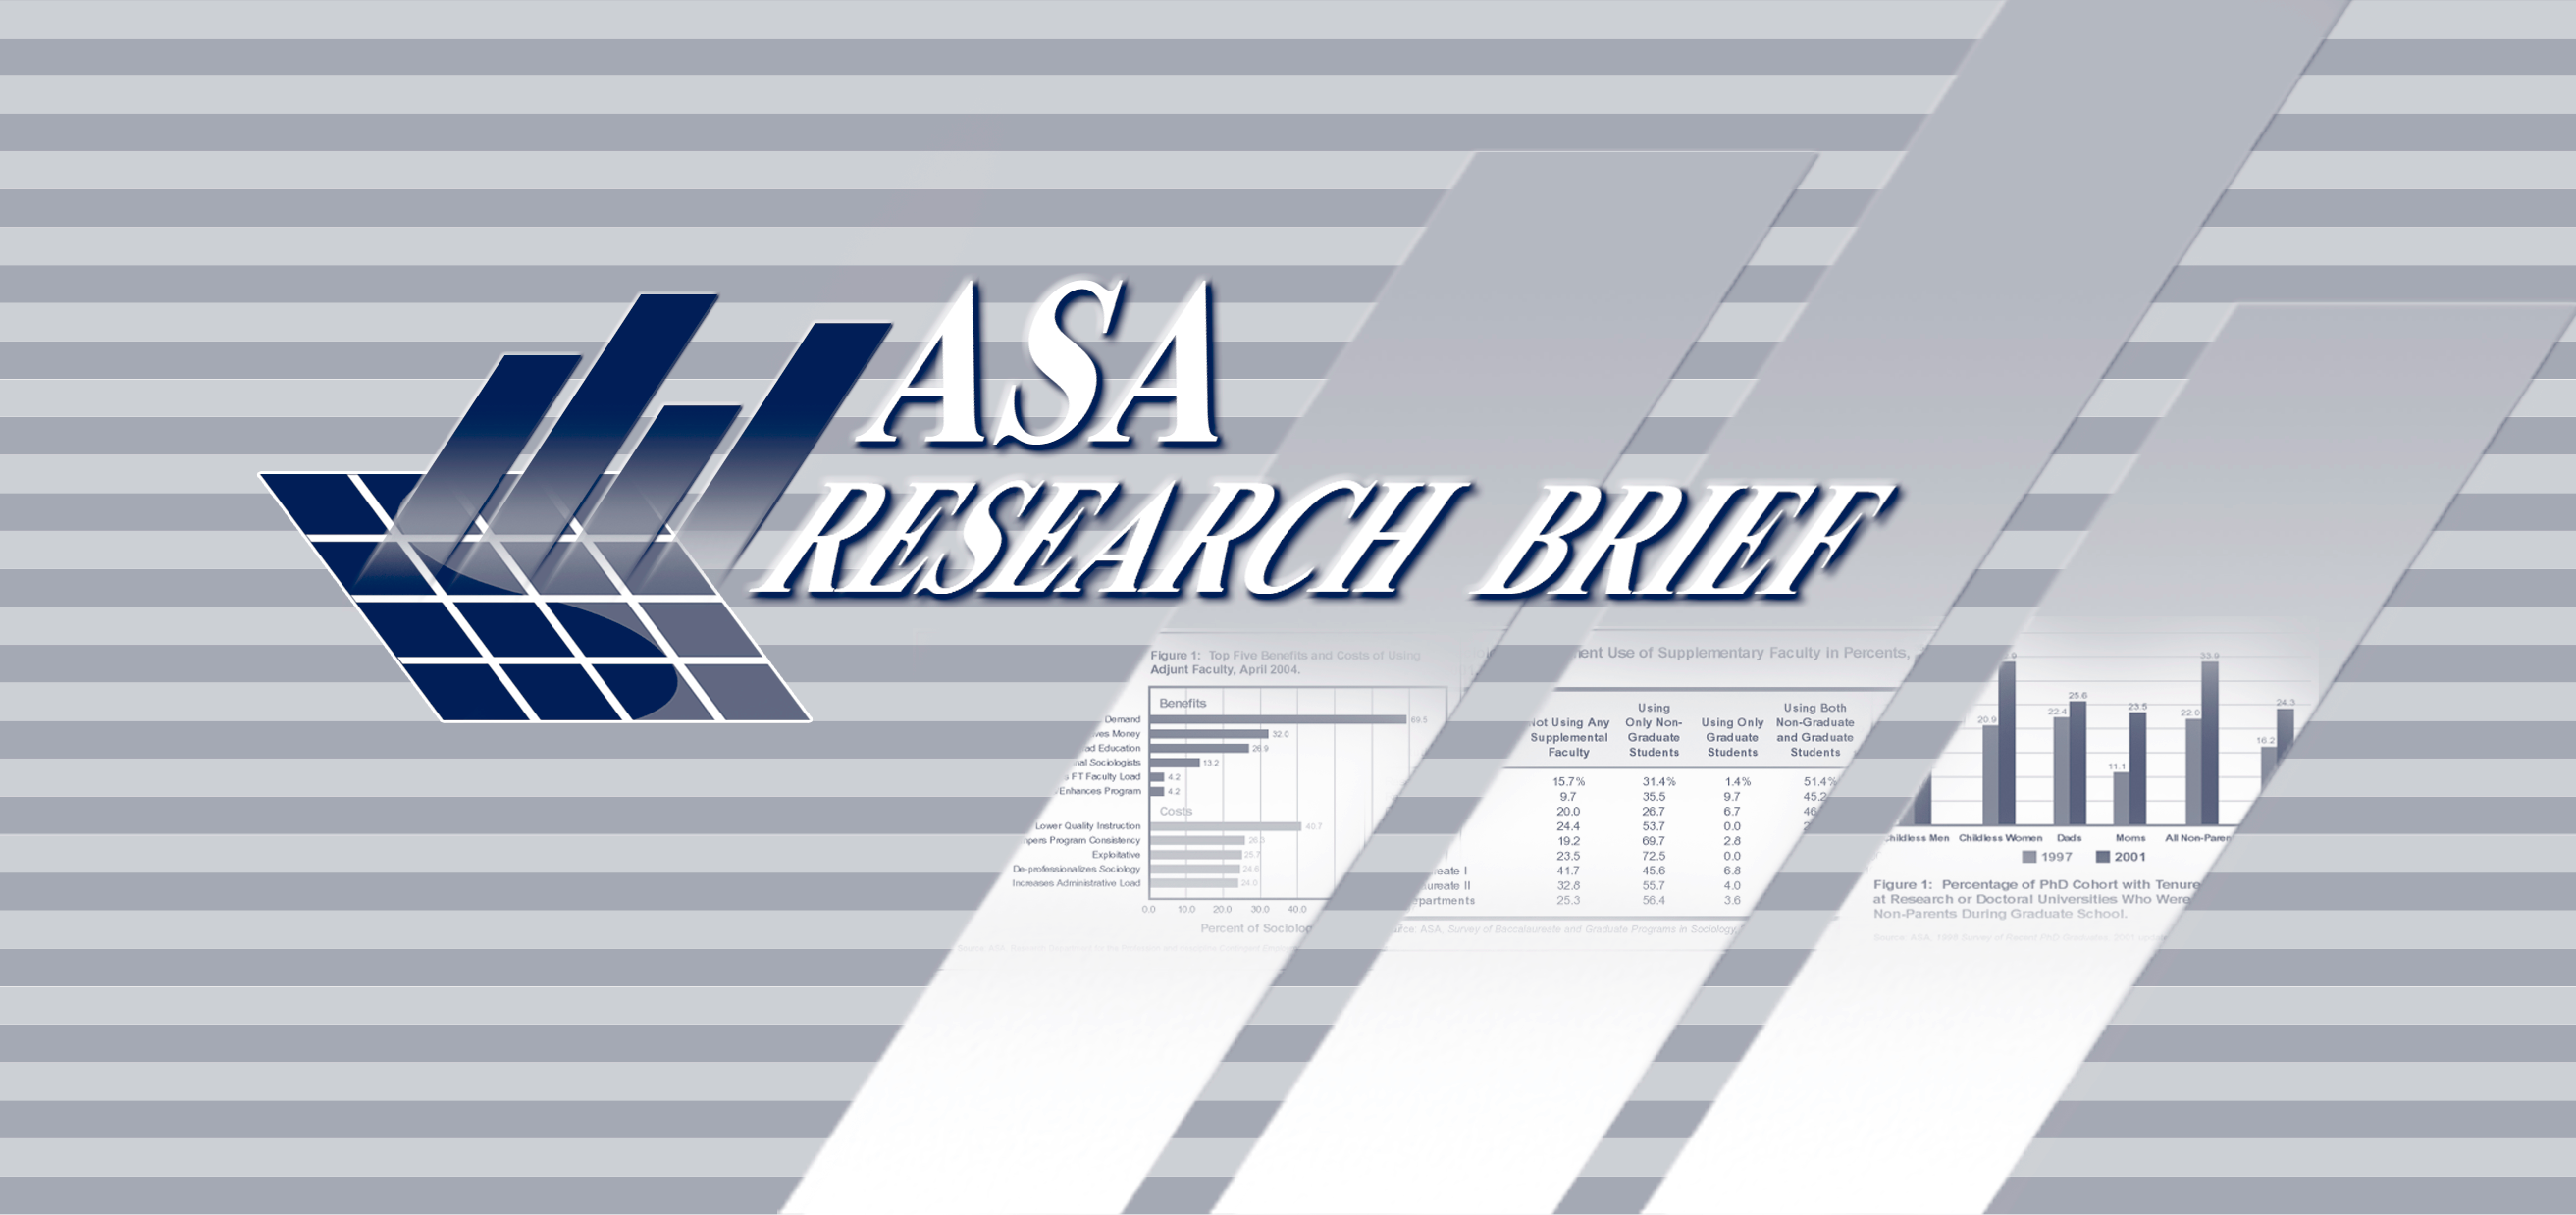 American Sociological Association DEPARTMENT OF RESEARCH AND DEVELOPMENT ASA RESEARCH BRIEF - JULY 2004 THE BEST TIME TO HAVE A BABY: Institutional Resources and Family Strategies Among Early Career